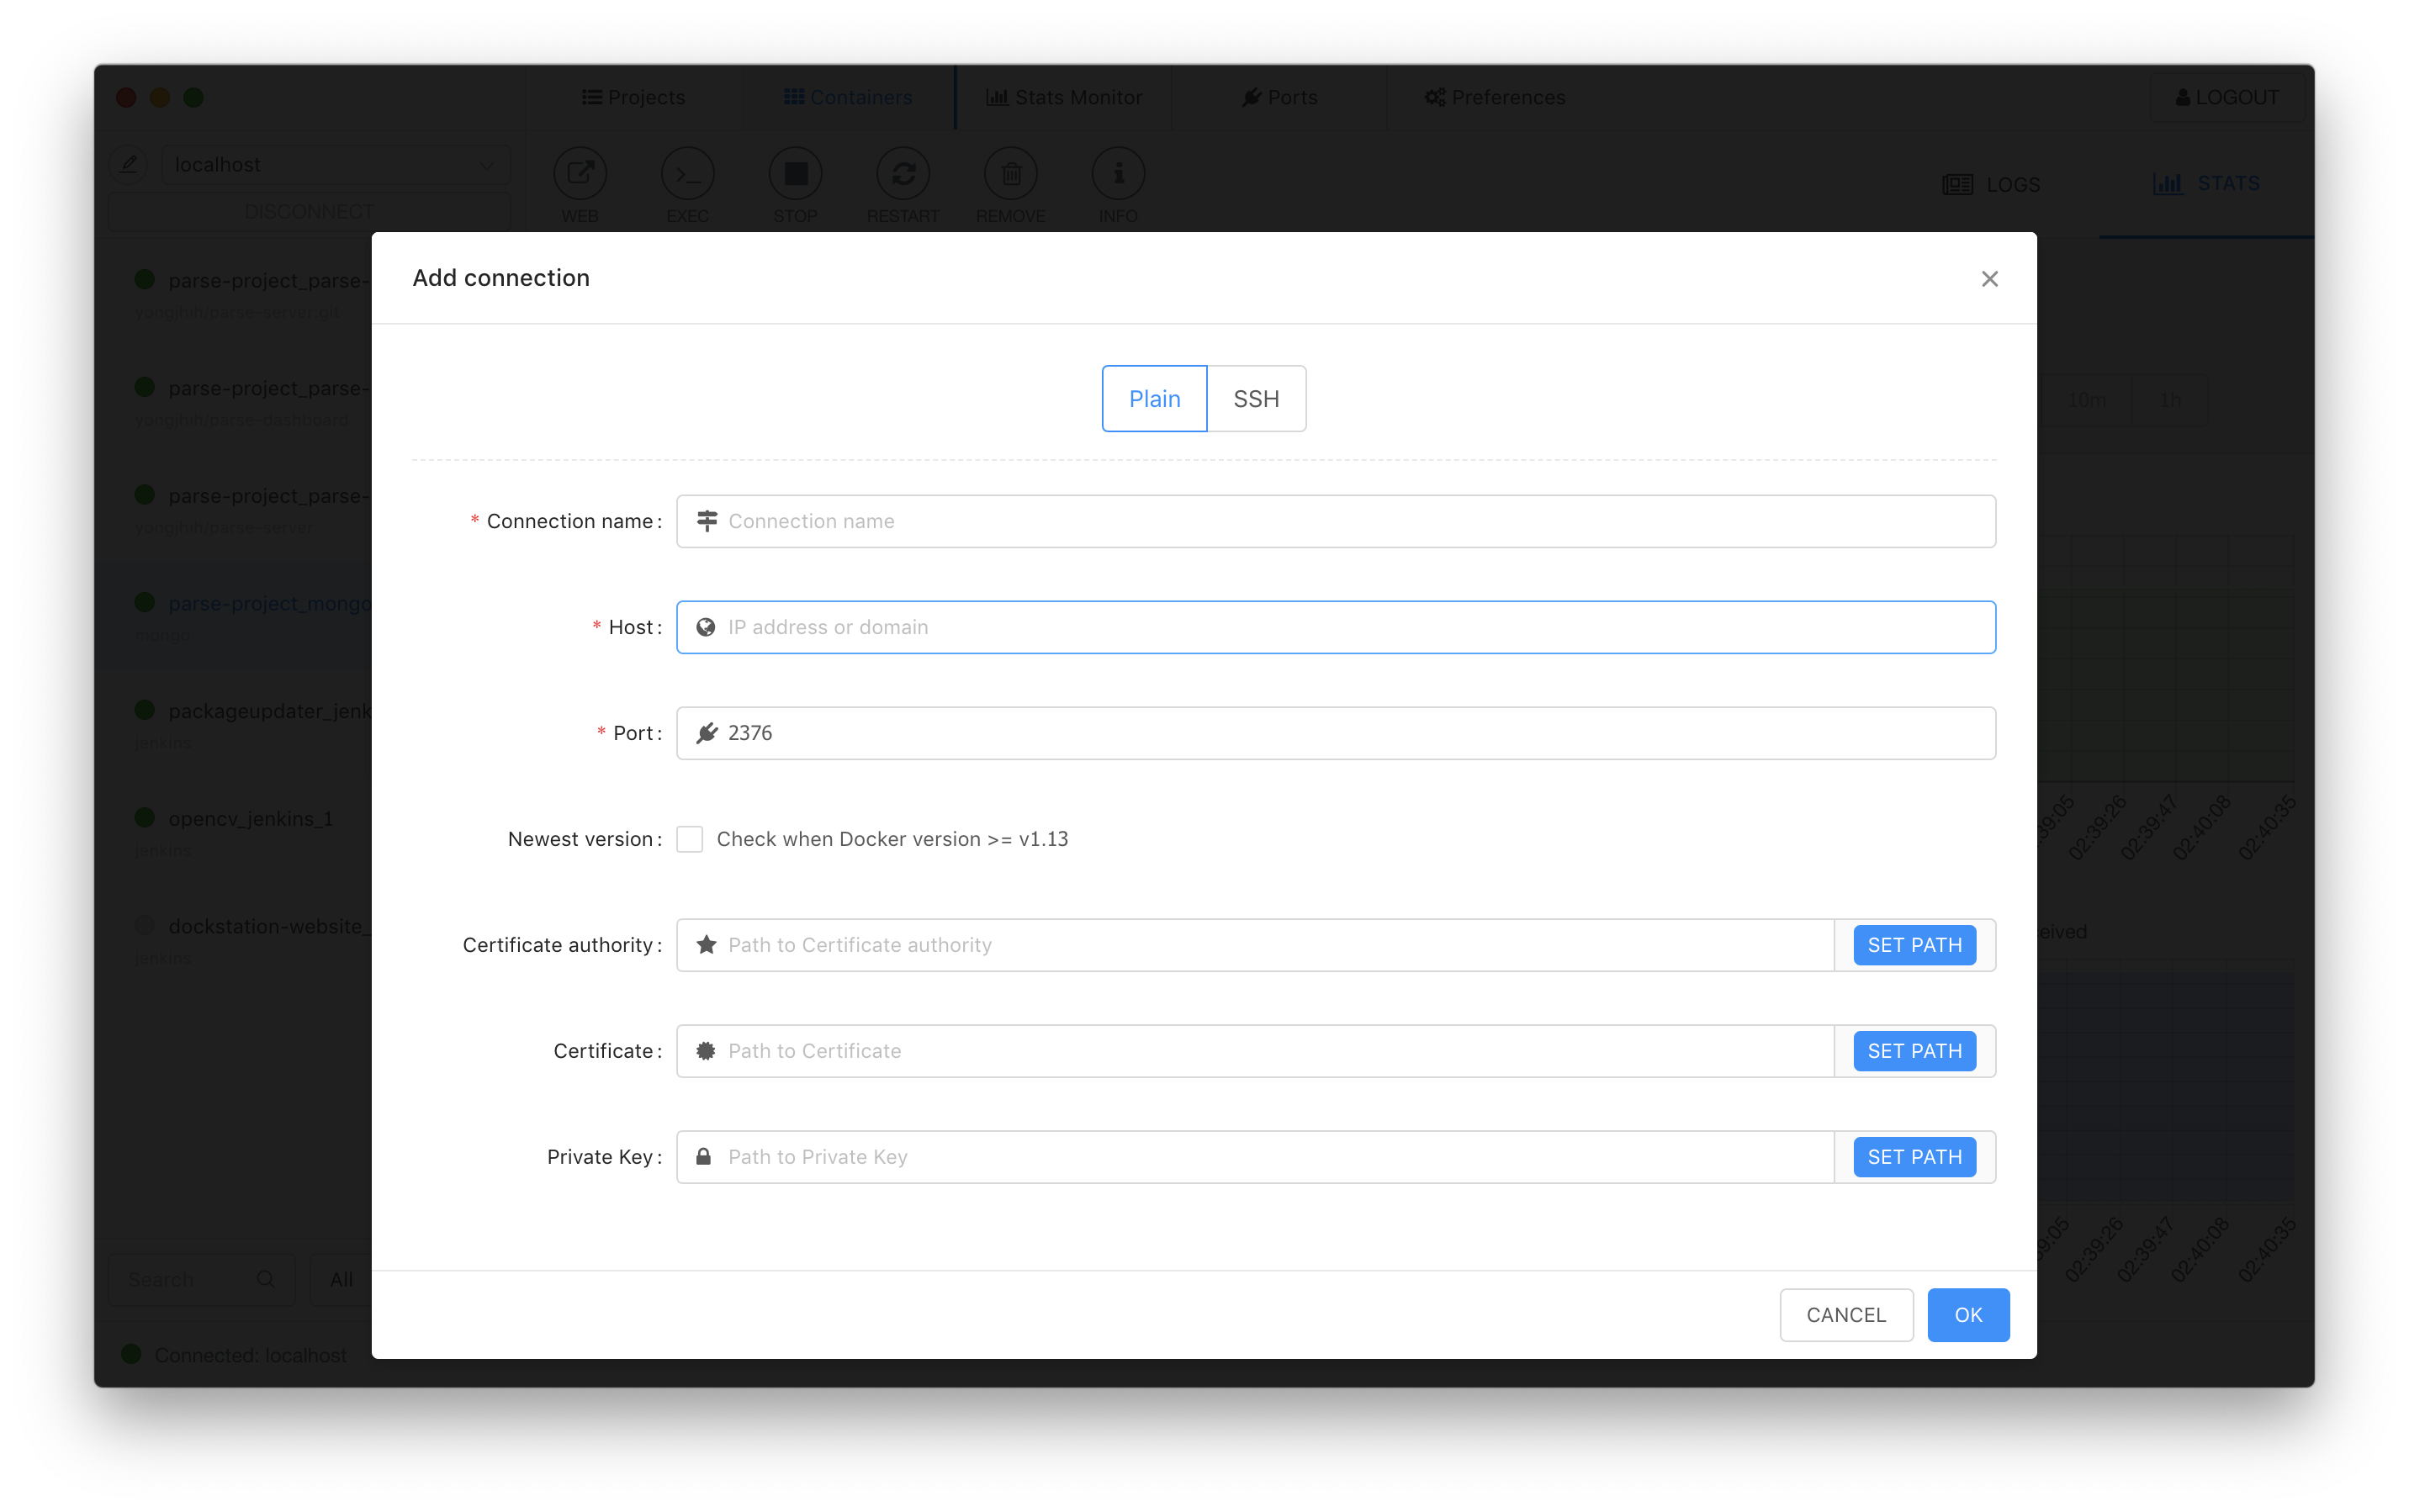 DockStation - Developing with Docker has never been so easy and